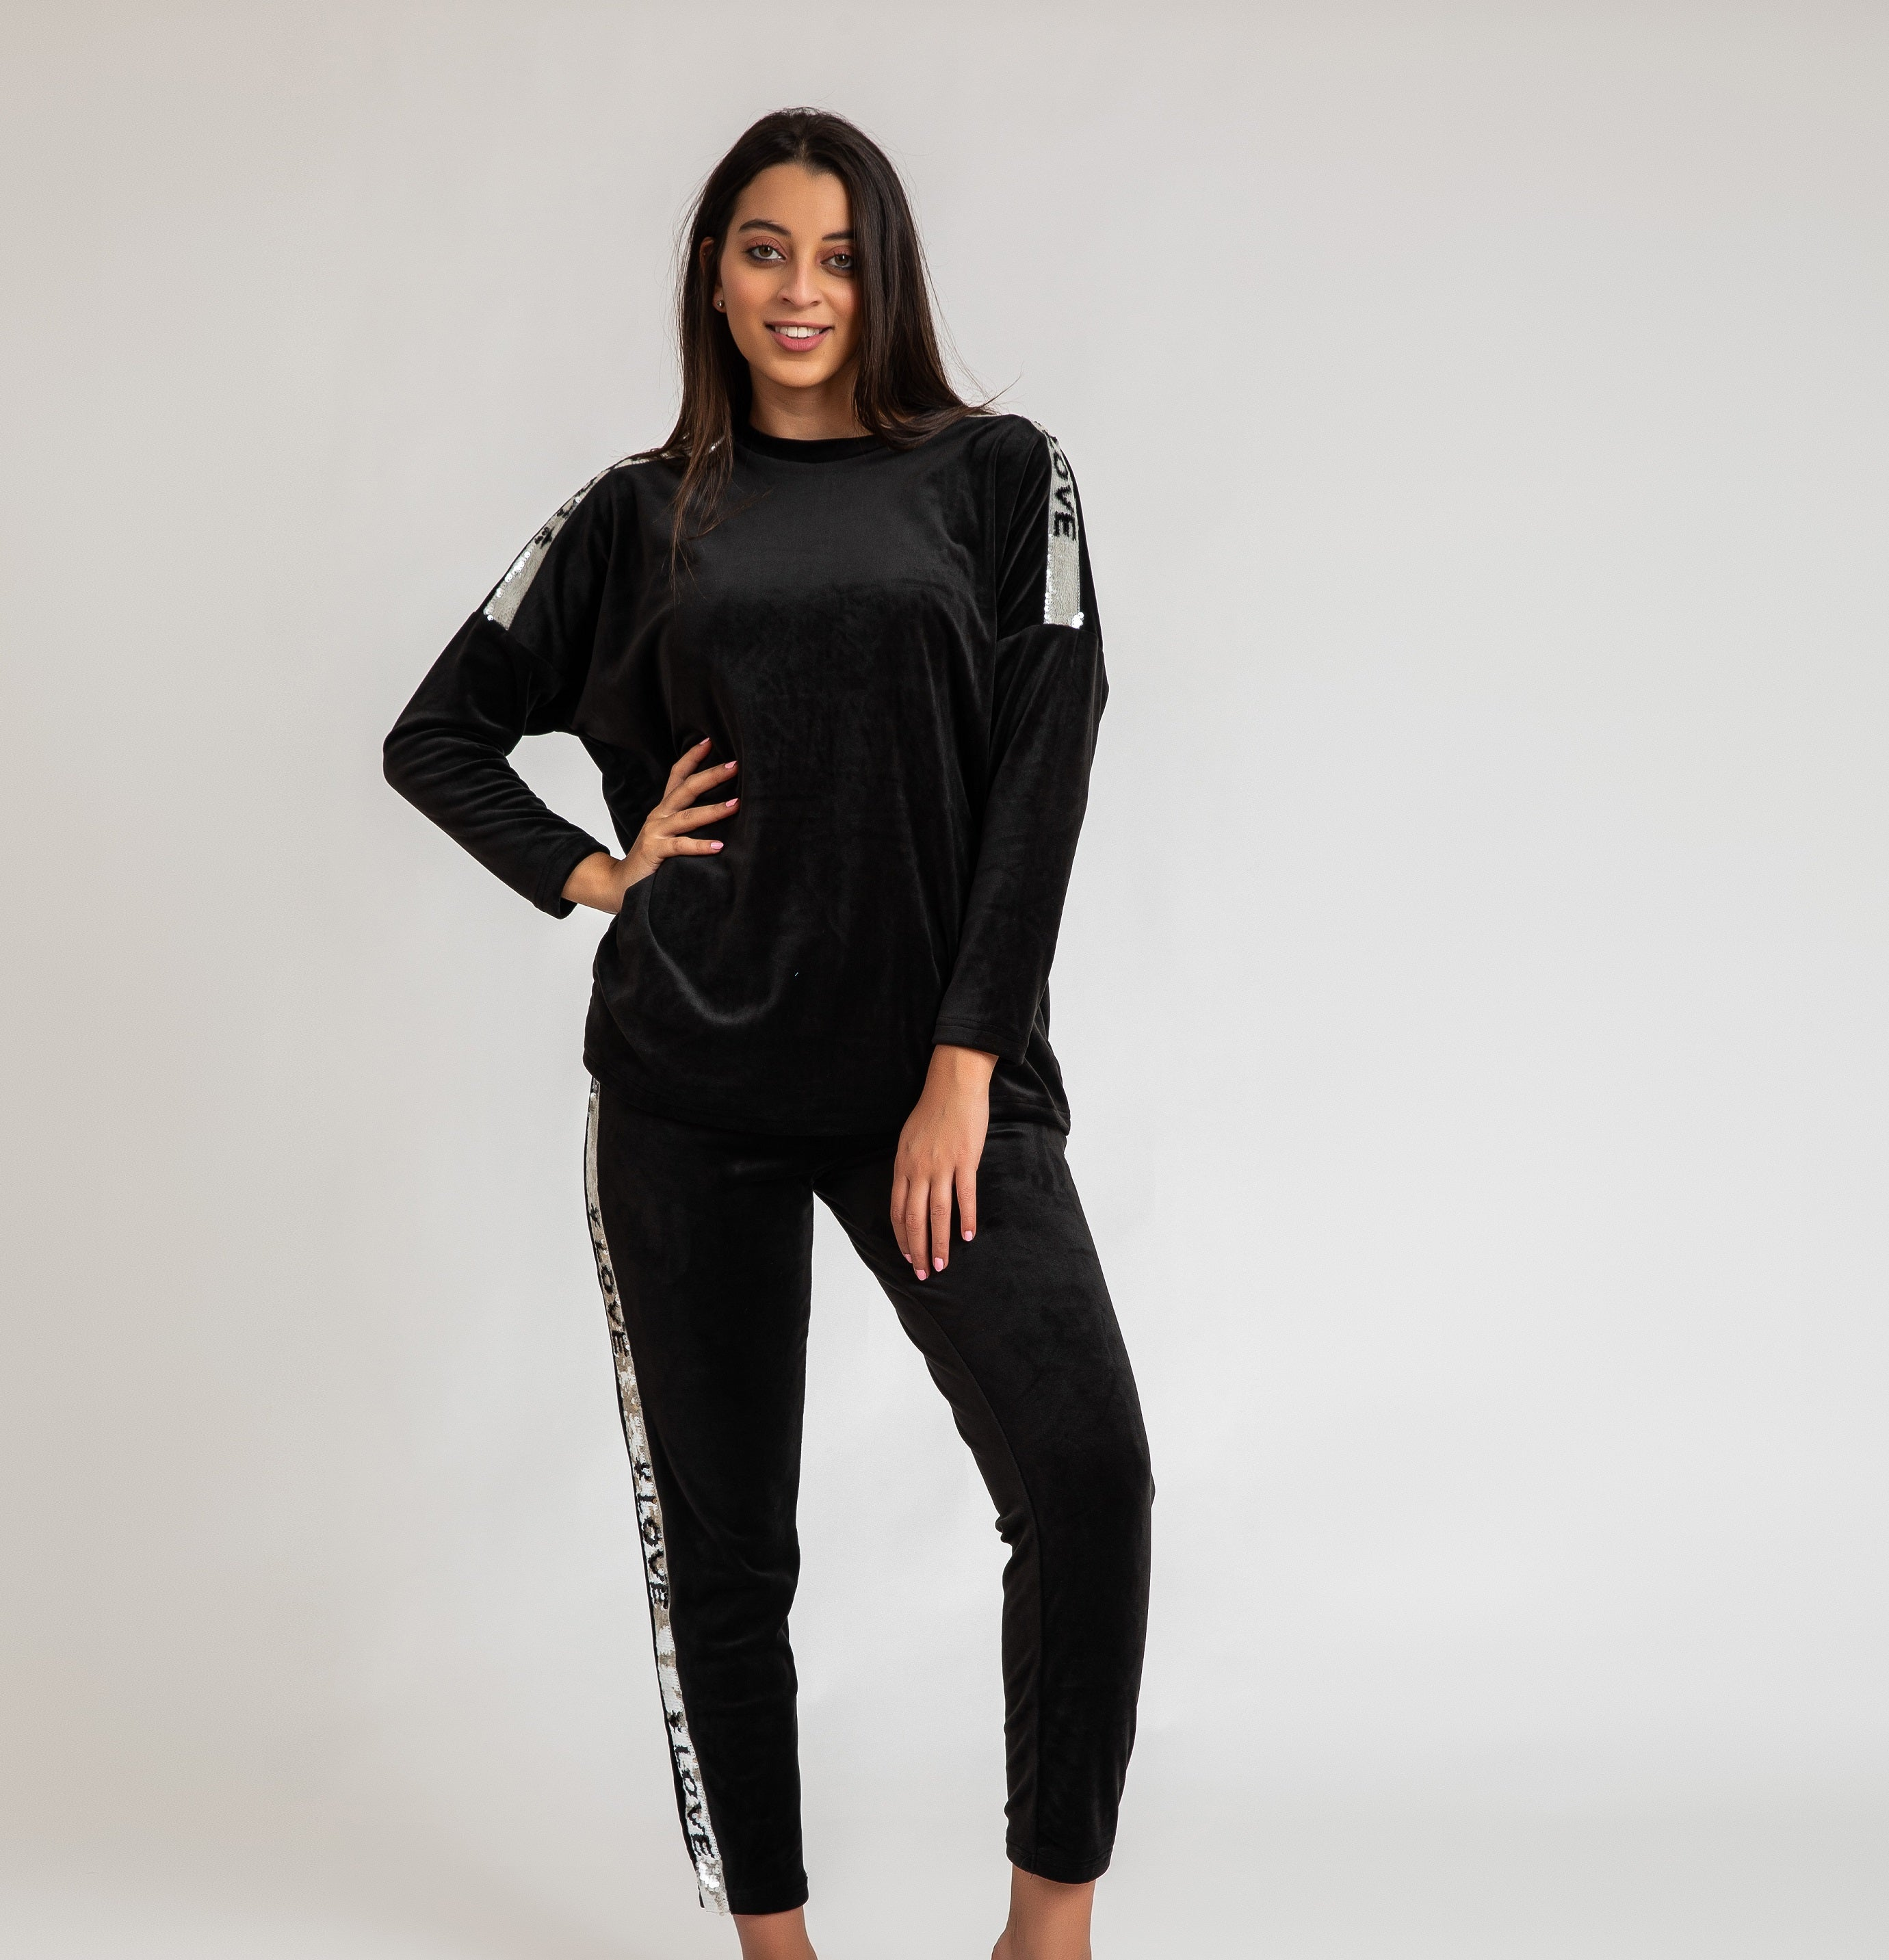 Long Sleeve with Love Sequin on Sleeve and Pants Loungset